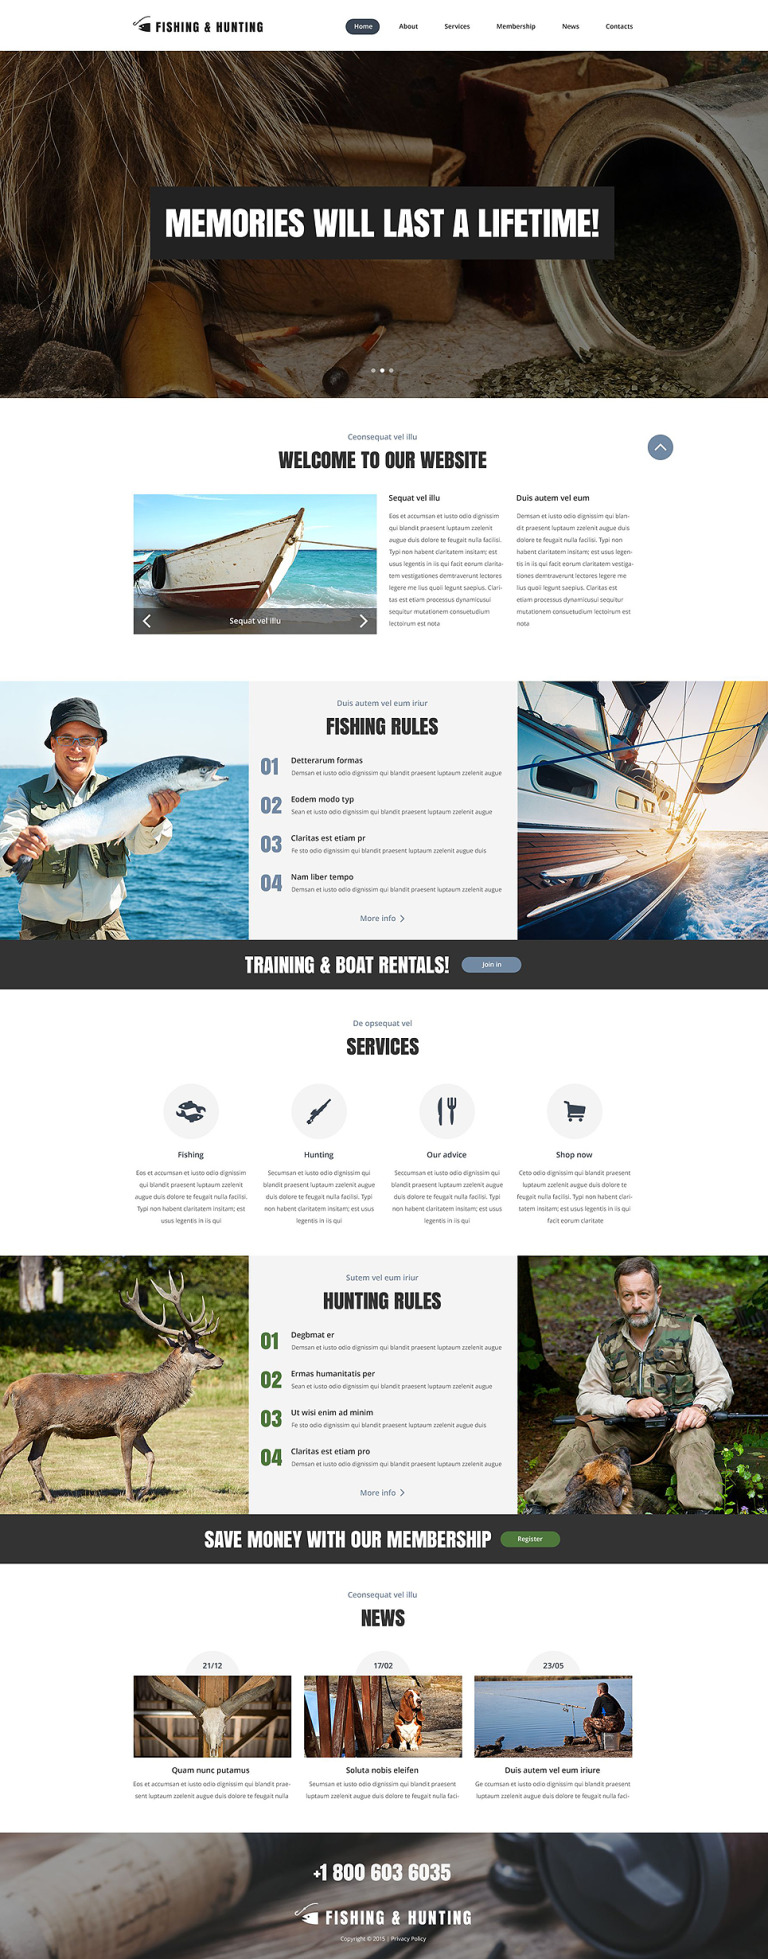 Fishing Hunting Blog Website Template New Screenshots BIG